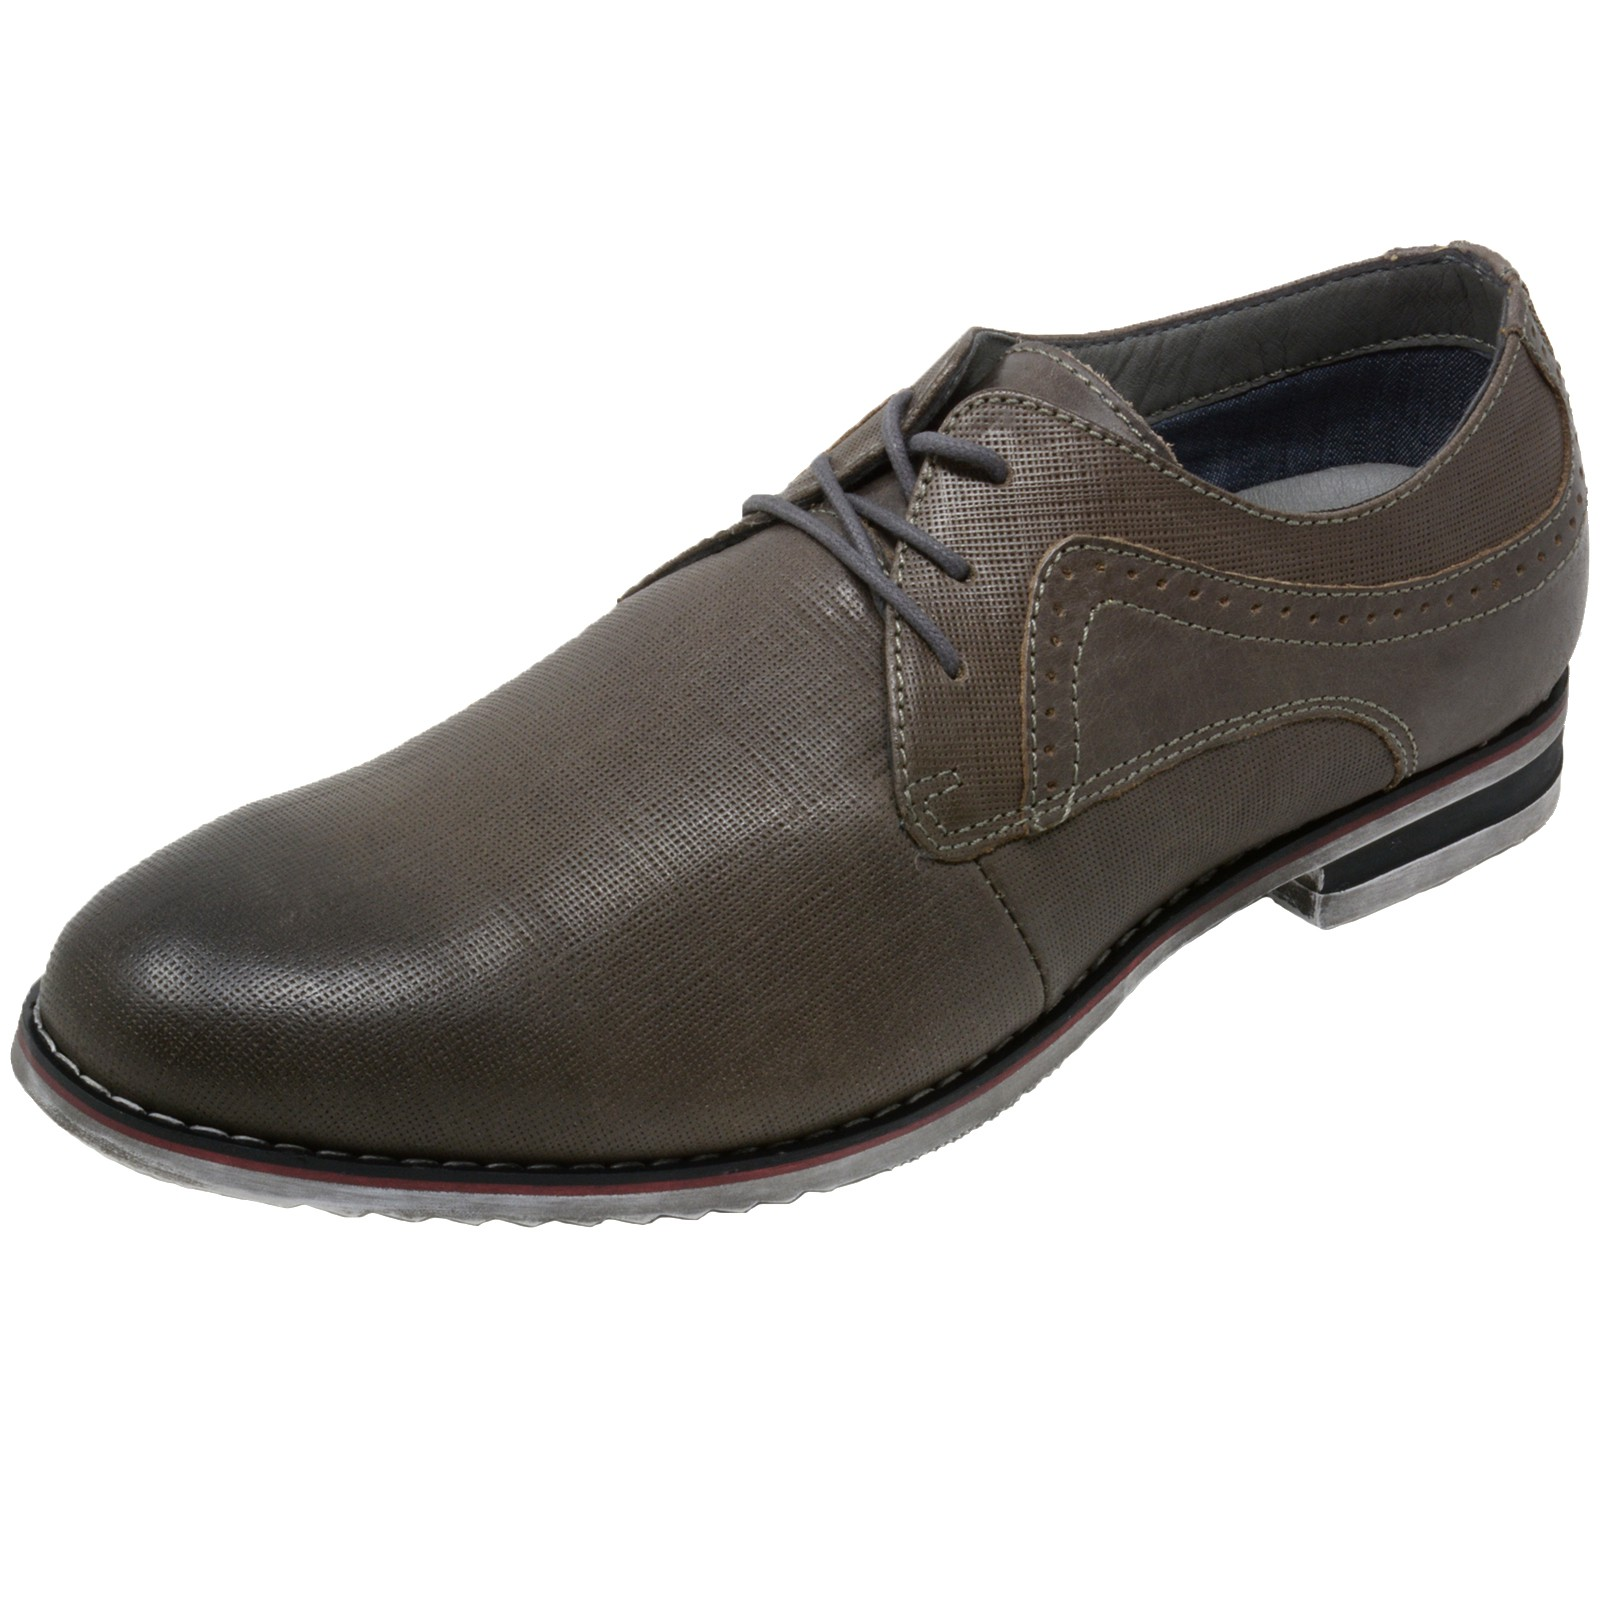 Double-Diamond-by-Alpine-Swiss-Mens-Saffiano-Leather-Lace-Up-Oxford-Dress-Shoes thumbnail 31